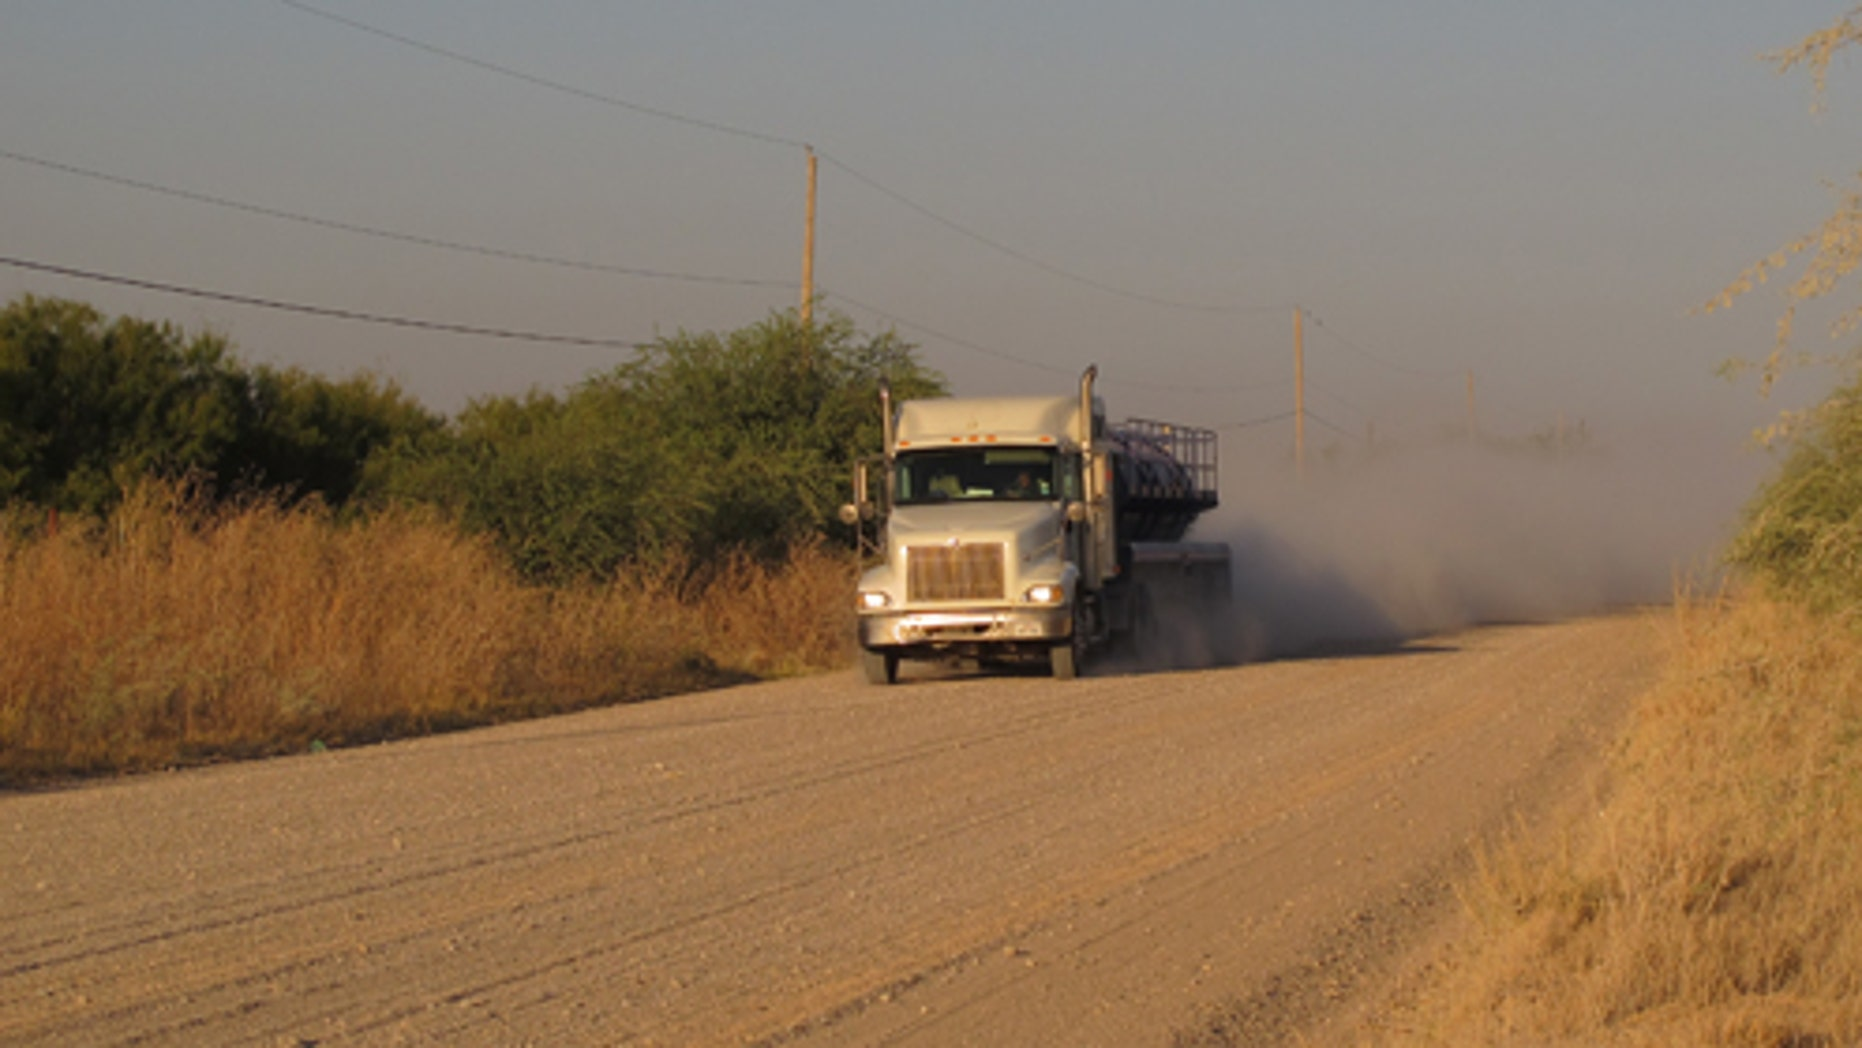 A truck travels along the stretch of gravel road near La Joya, Texas, Friday Oct. 26, 2012, where a Texas Department of Public Safety helicopter and sharpshooter assisted the previous day in the chase of a suspected illegal immigrant smuggler. Two people in the fleeing vehicle were killed and a third was wounded. (AP Photo/Chris Sherman)